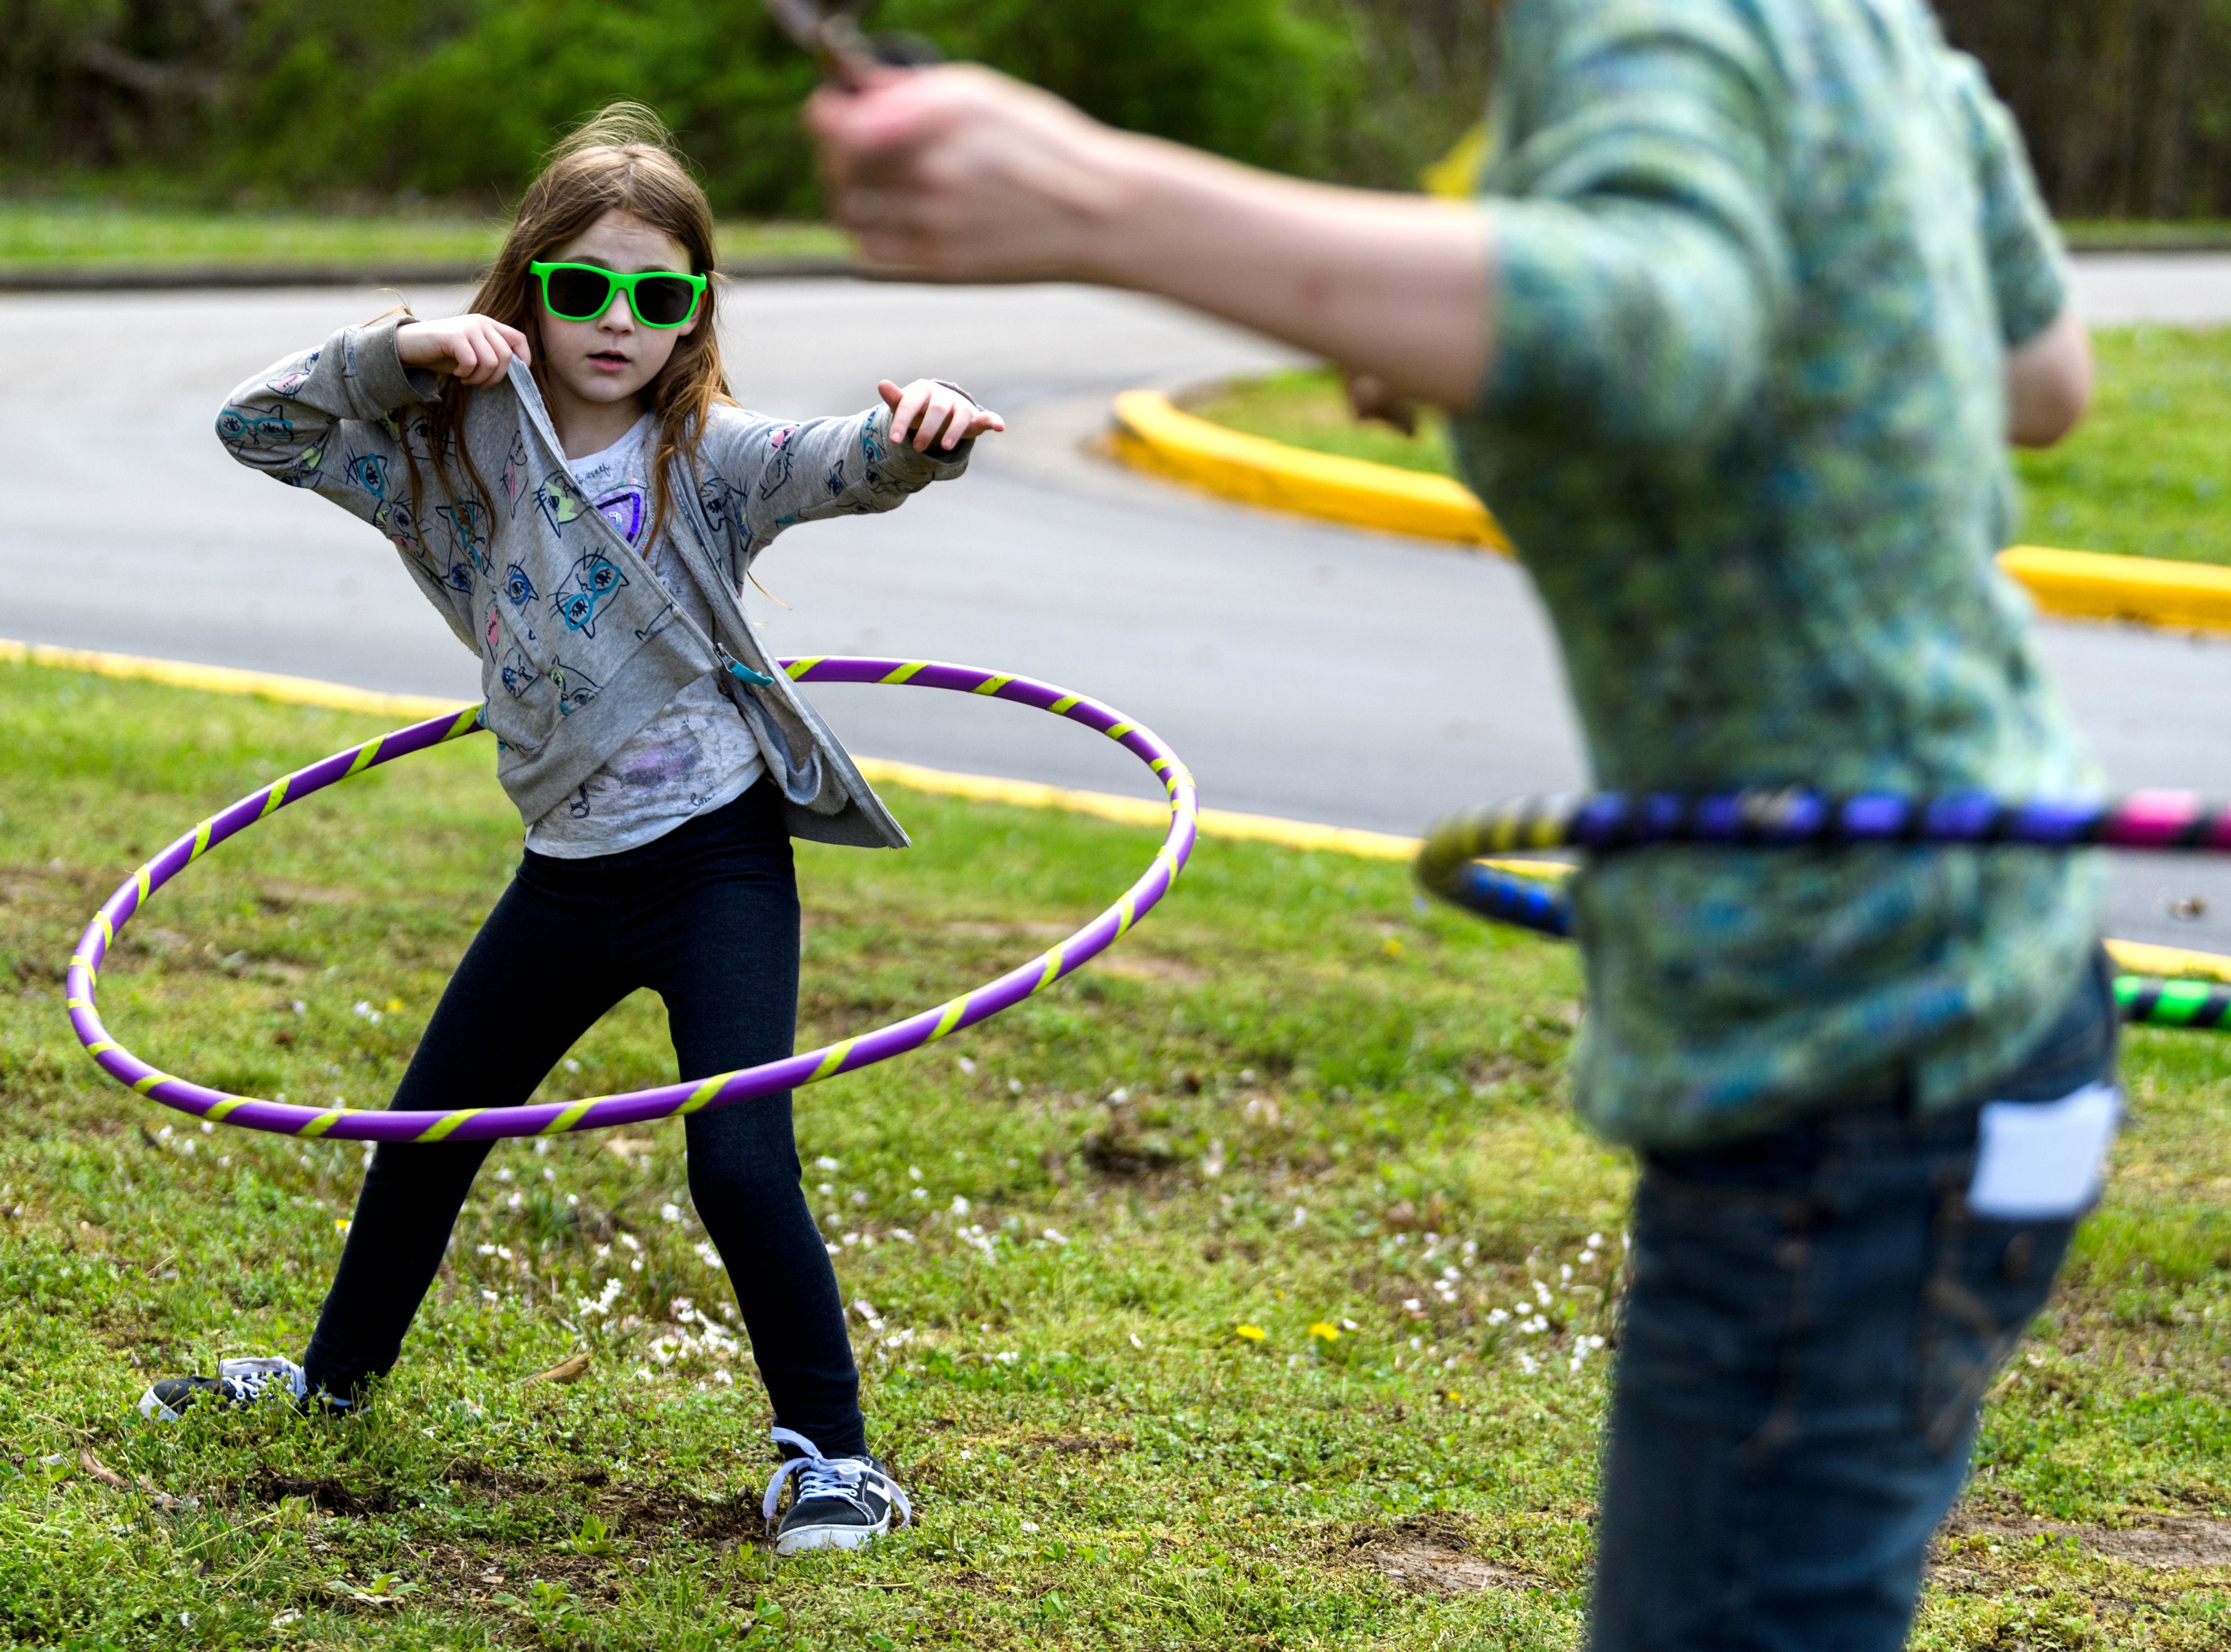 """Danika Goodridge, 8, and her mother Kourtney Harper, right, compete to see who can hula hoop the longest during the Community Action Program of Evansville & Vanderburgh County, Inc. (CAPE) Family Fun Day at Wesselman Park in Evansville, Ind., Friday, April 12, 2019. """"We should be in a professional contest,"""" Harper said."""